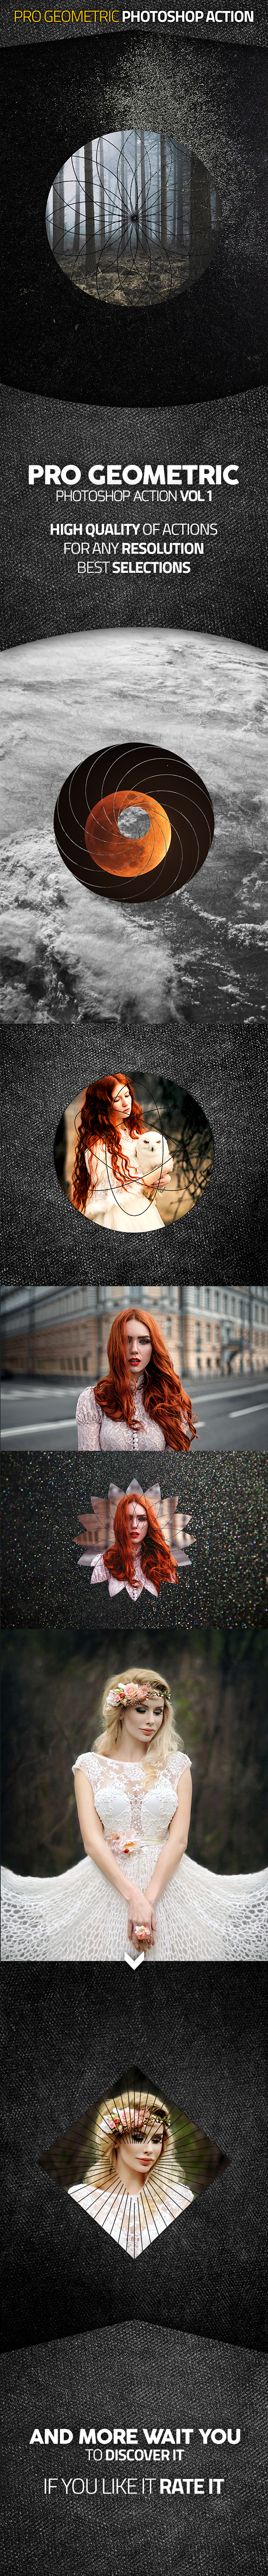 Pro Geometric Action Vol I - Photo Effects Actions